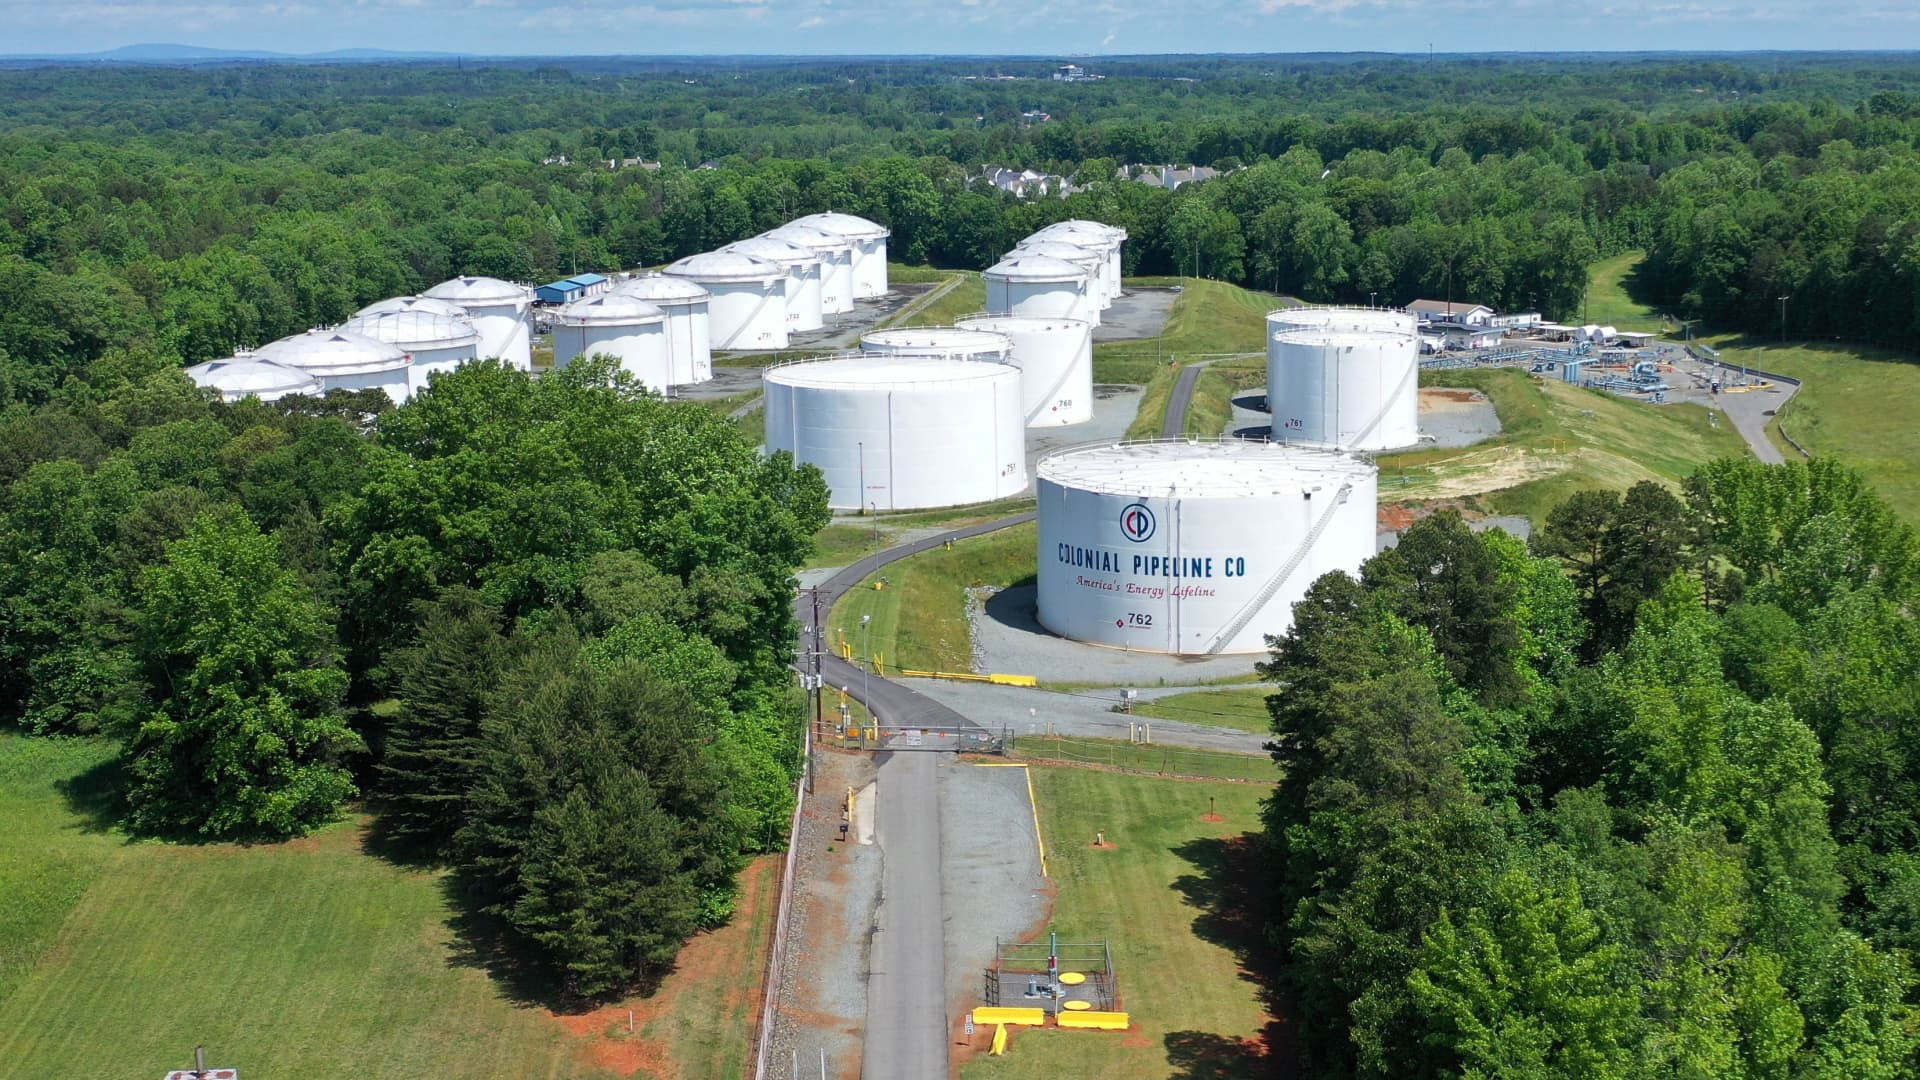 Holding tanks are seen in an aerial photograph at Colonial Pipeline's Charlotte Tank Farm in Charlotte, North Carolina, U.S. May 10, 2021.